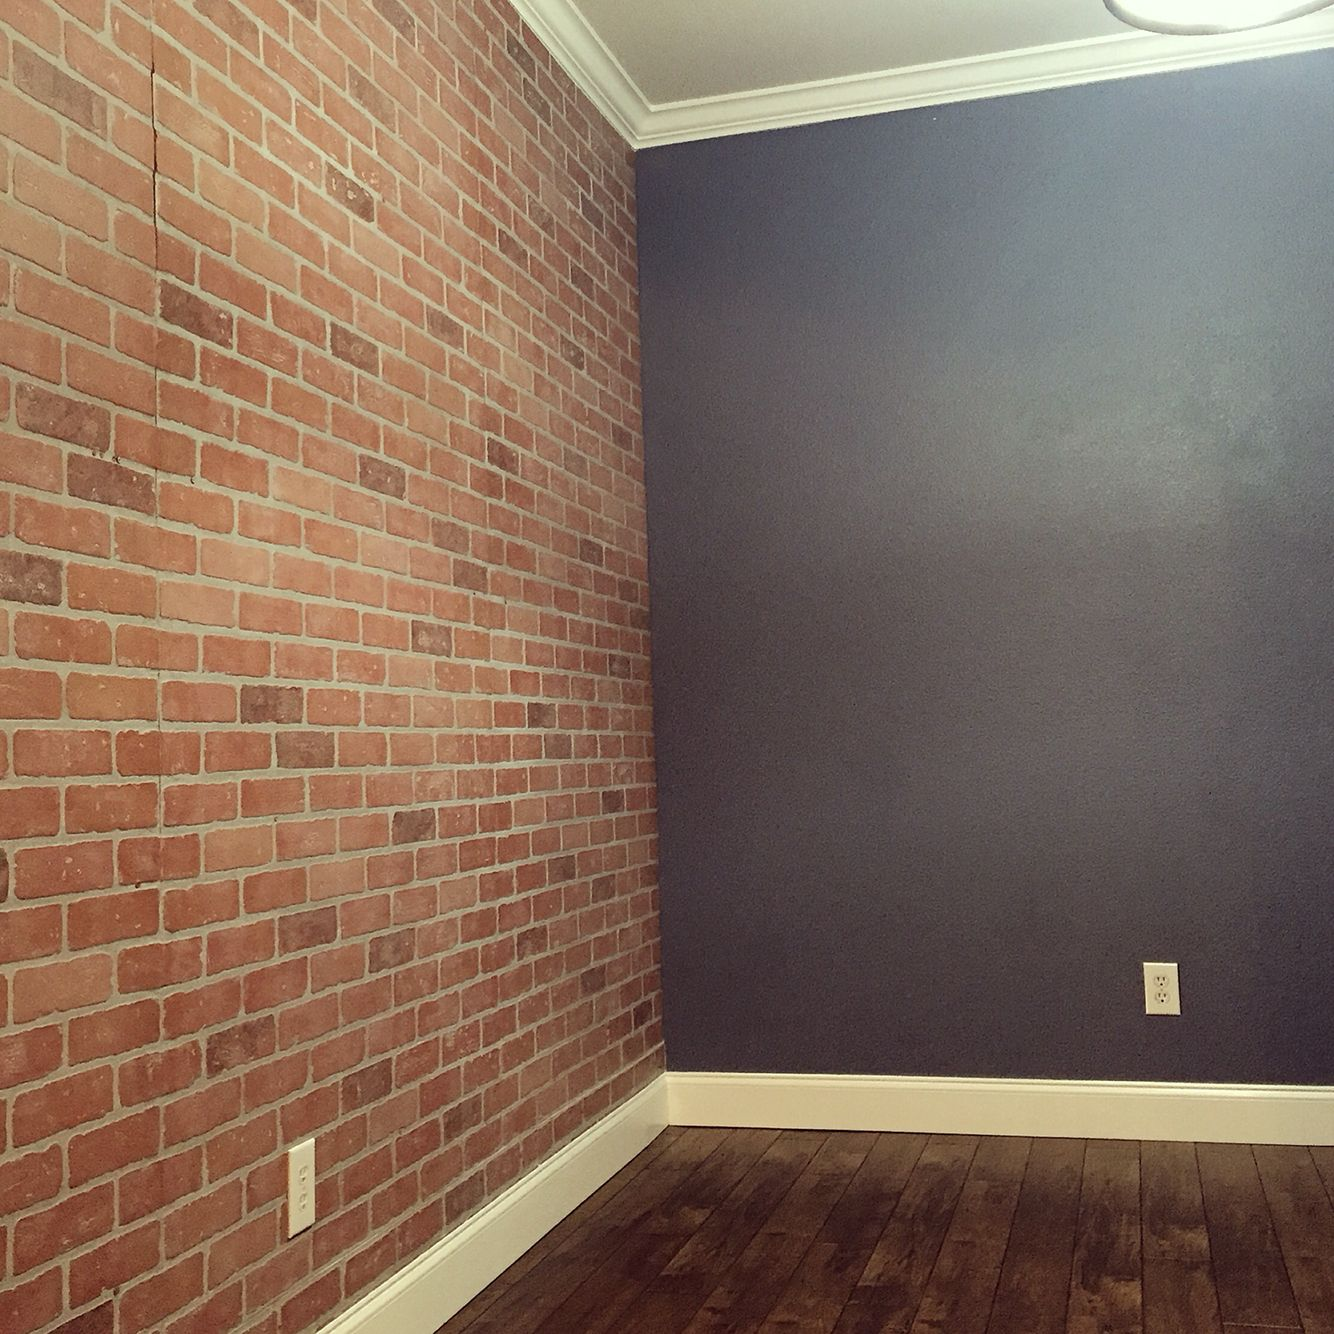 Faux Brick Interior Wall Faux Brick Wall Panels From Home Depot Home Decor Ideas Basement